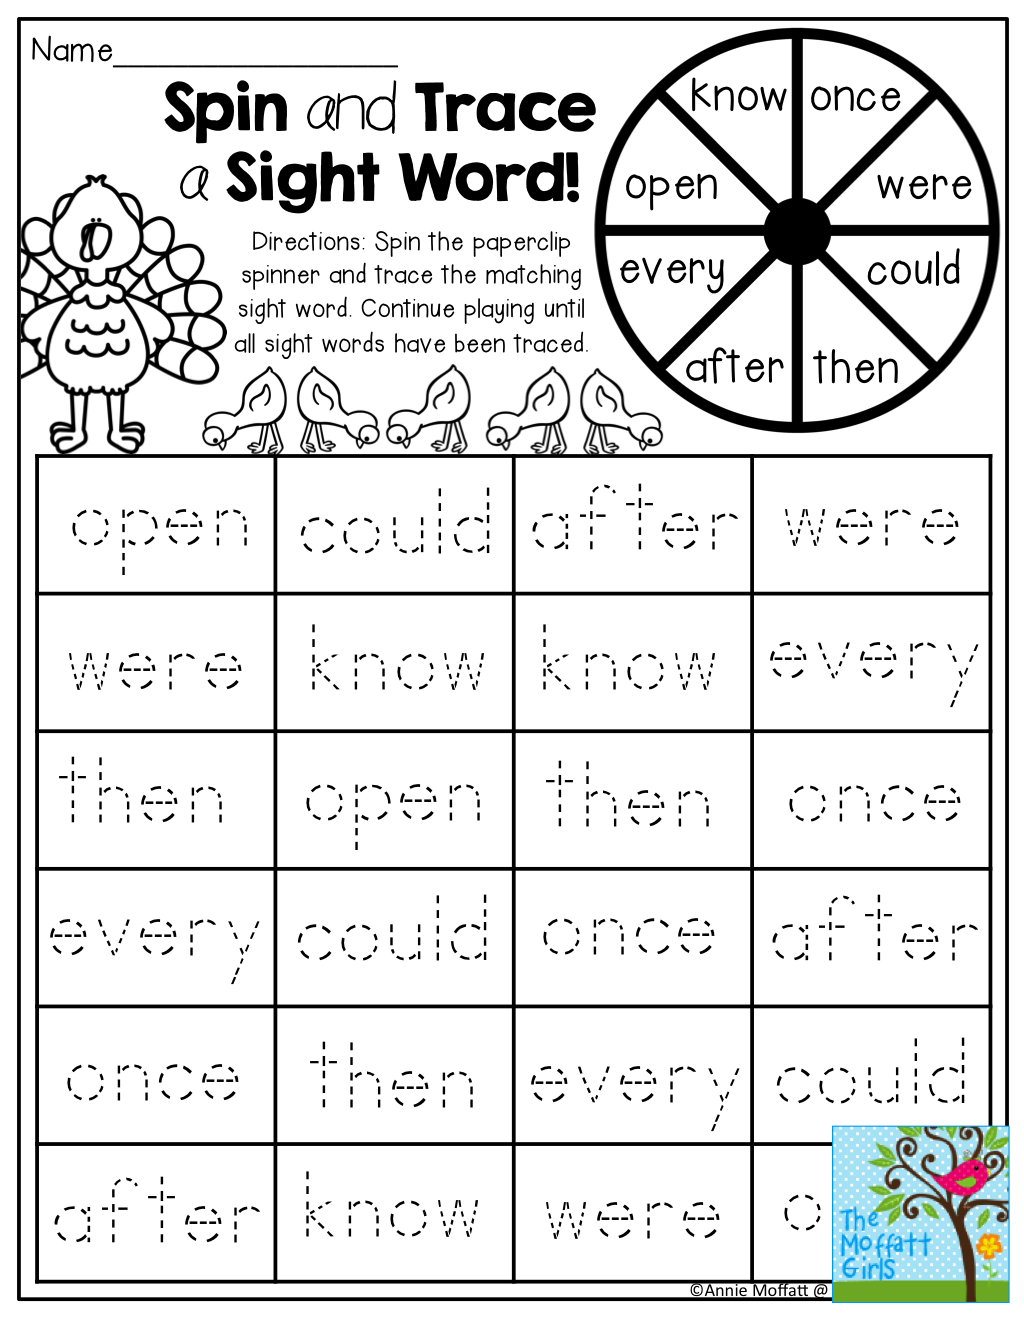 Spin And Trace A Sight Word Tons Of Fun And Interactive